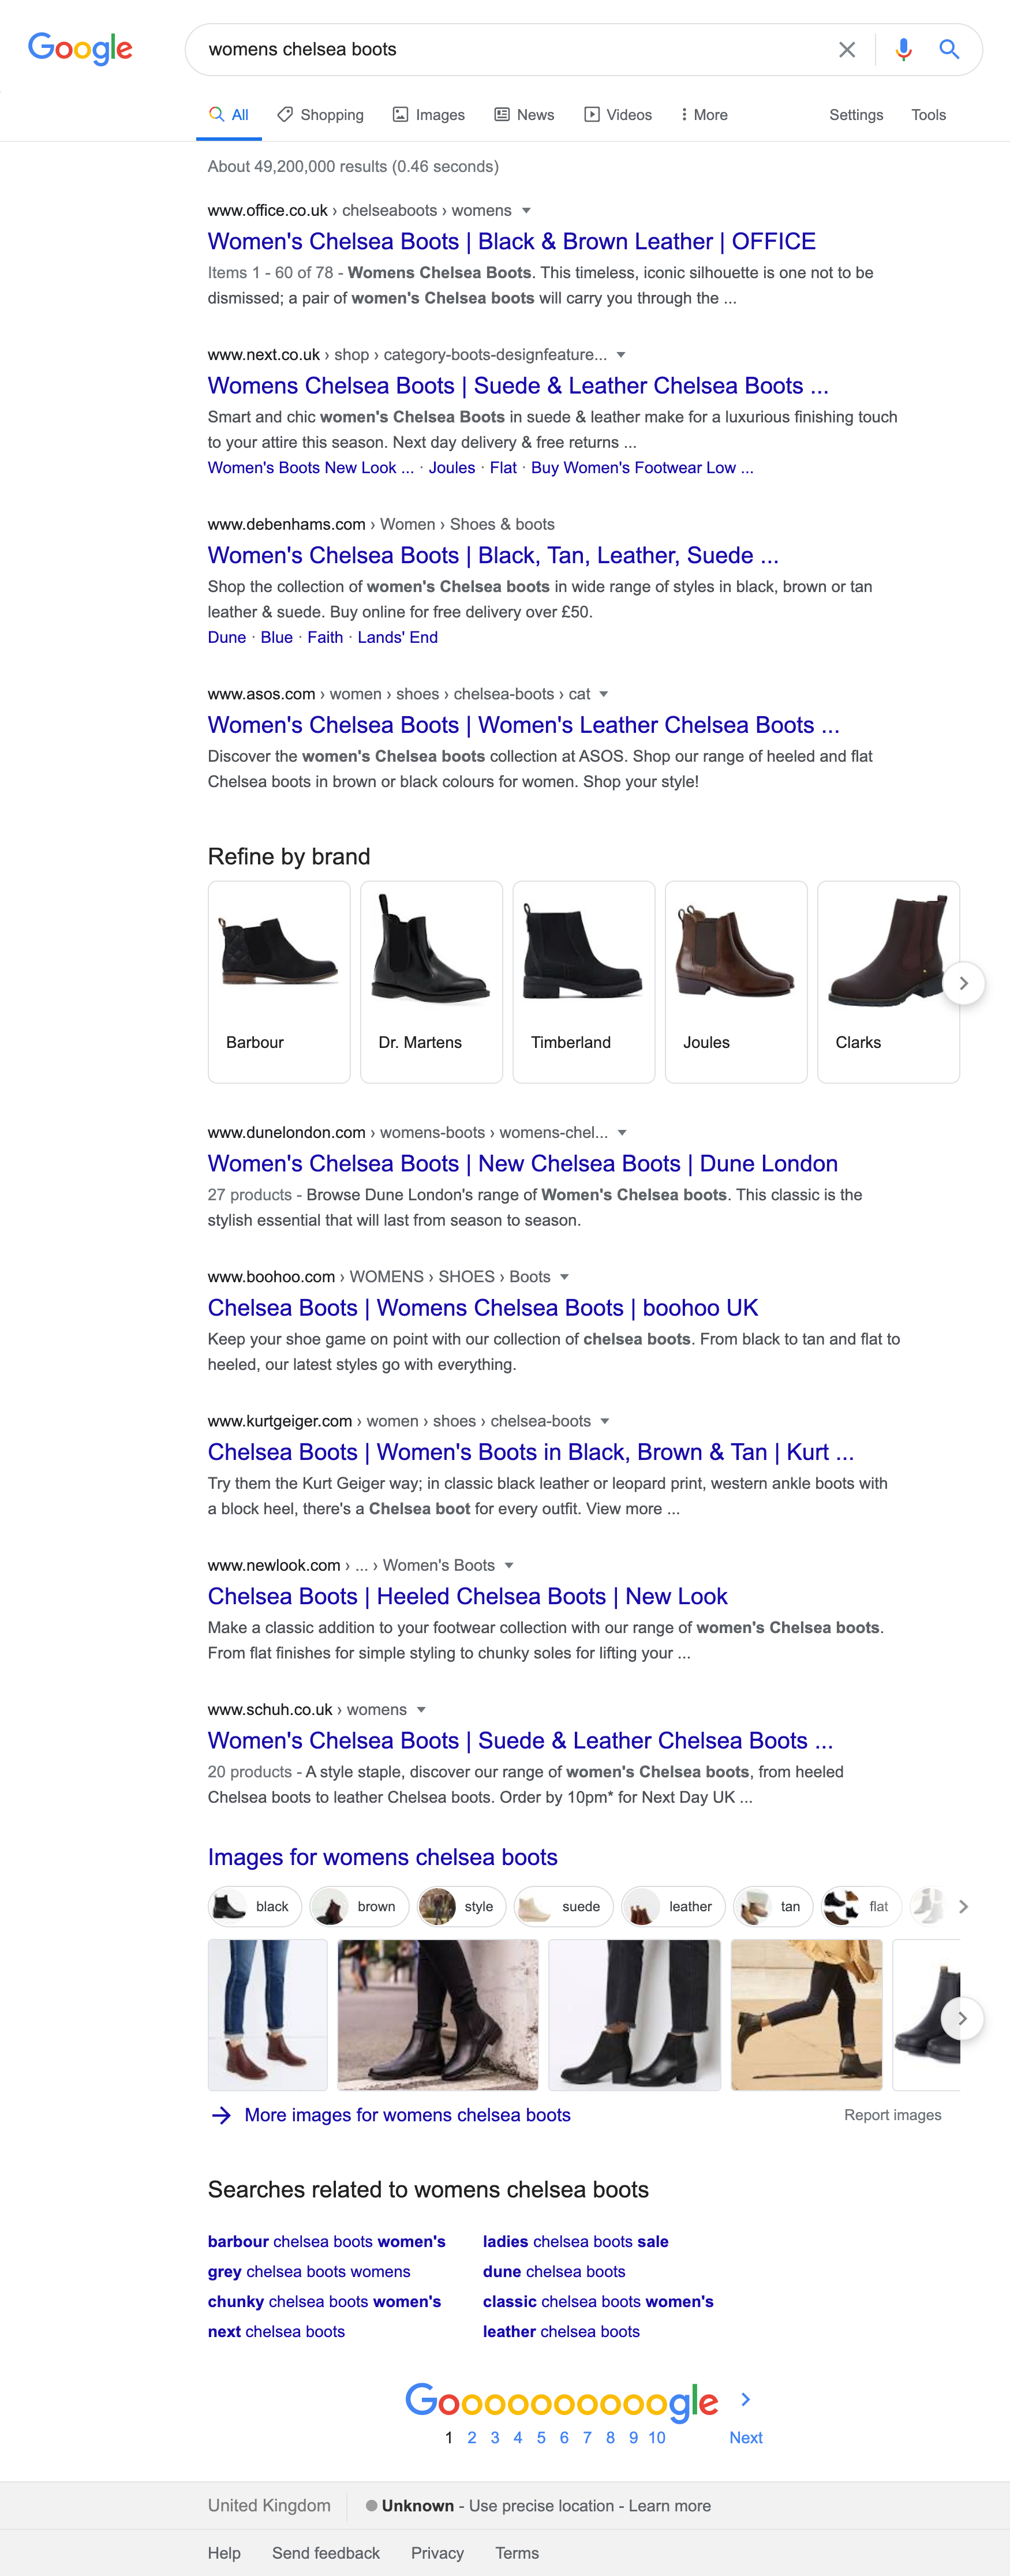 SERP for womens chelsea boots.